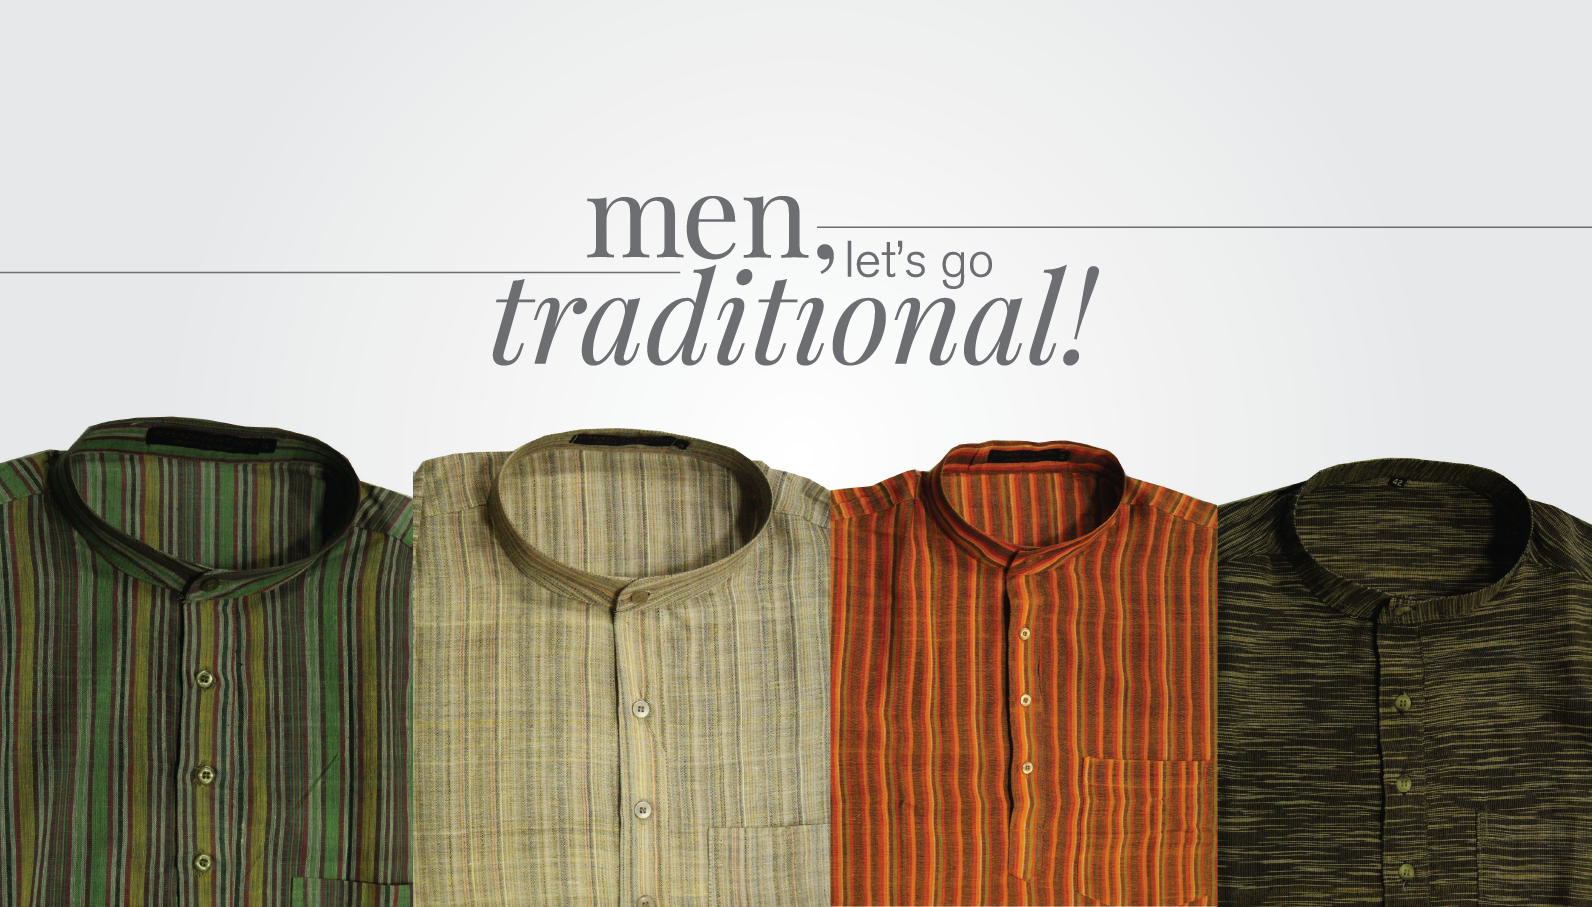 Men, let's go traditional!